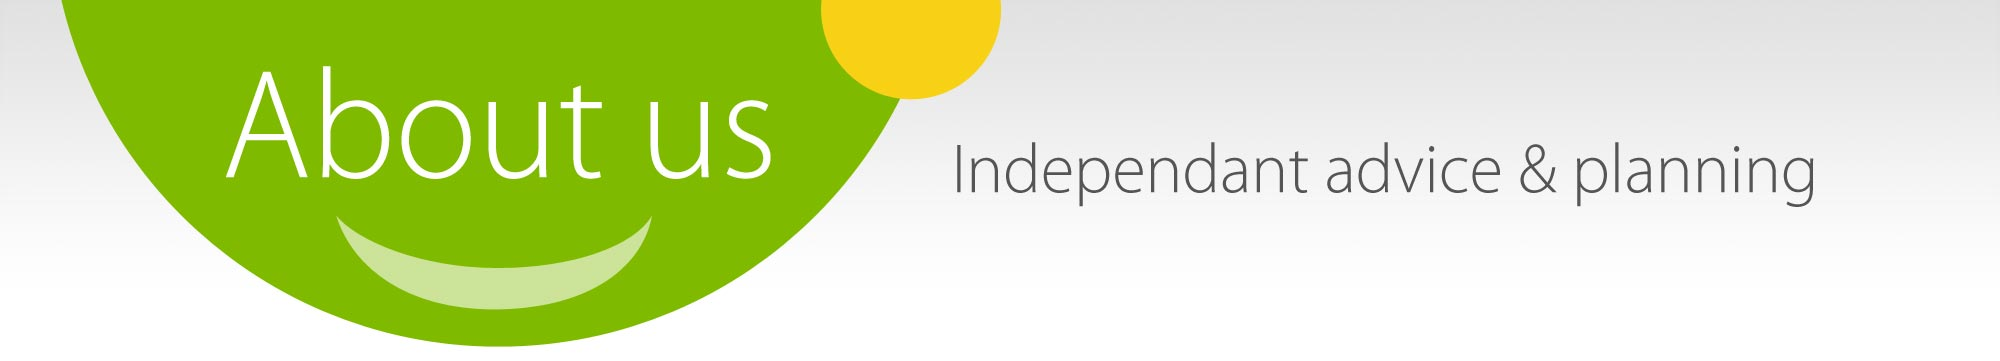 Independent telecom consultancy - About us